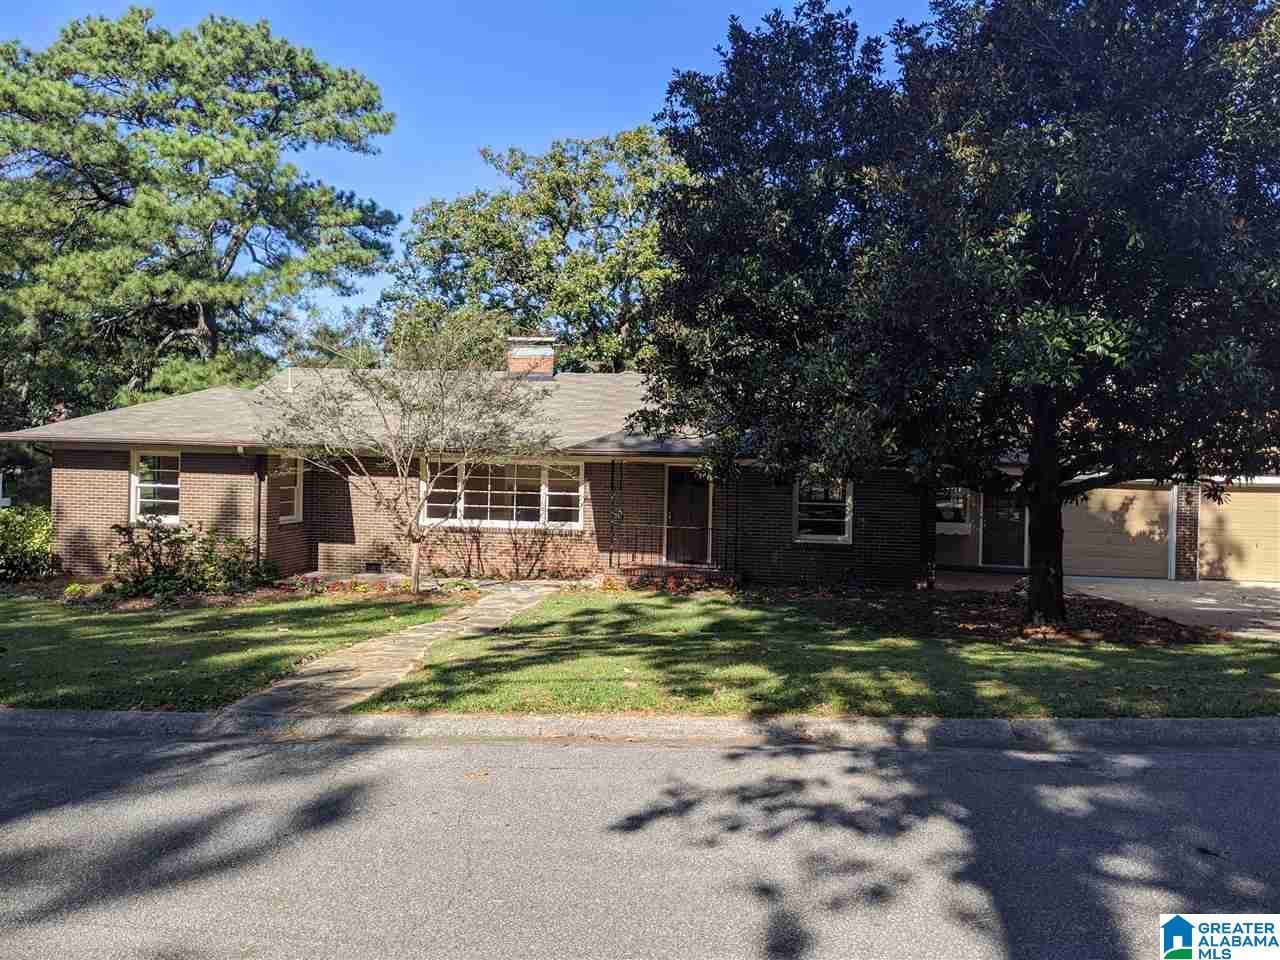 5600 8TH AVE S, Birmingham, AL 35212 - MLS#: 900107